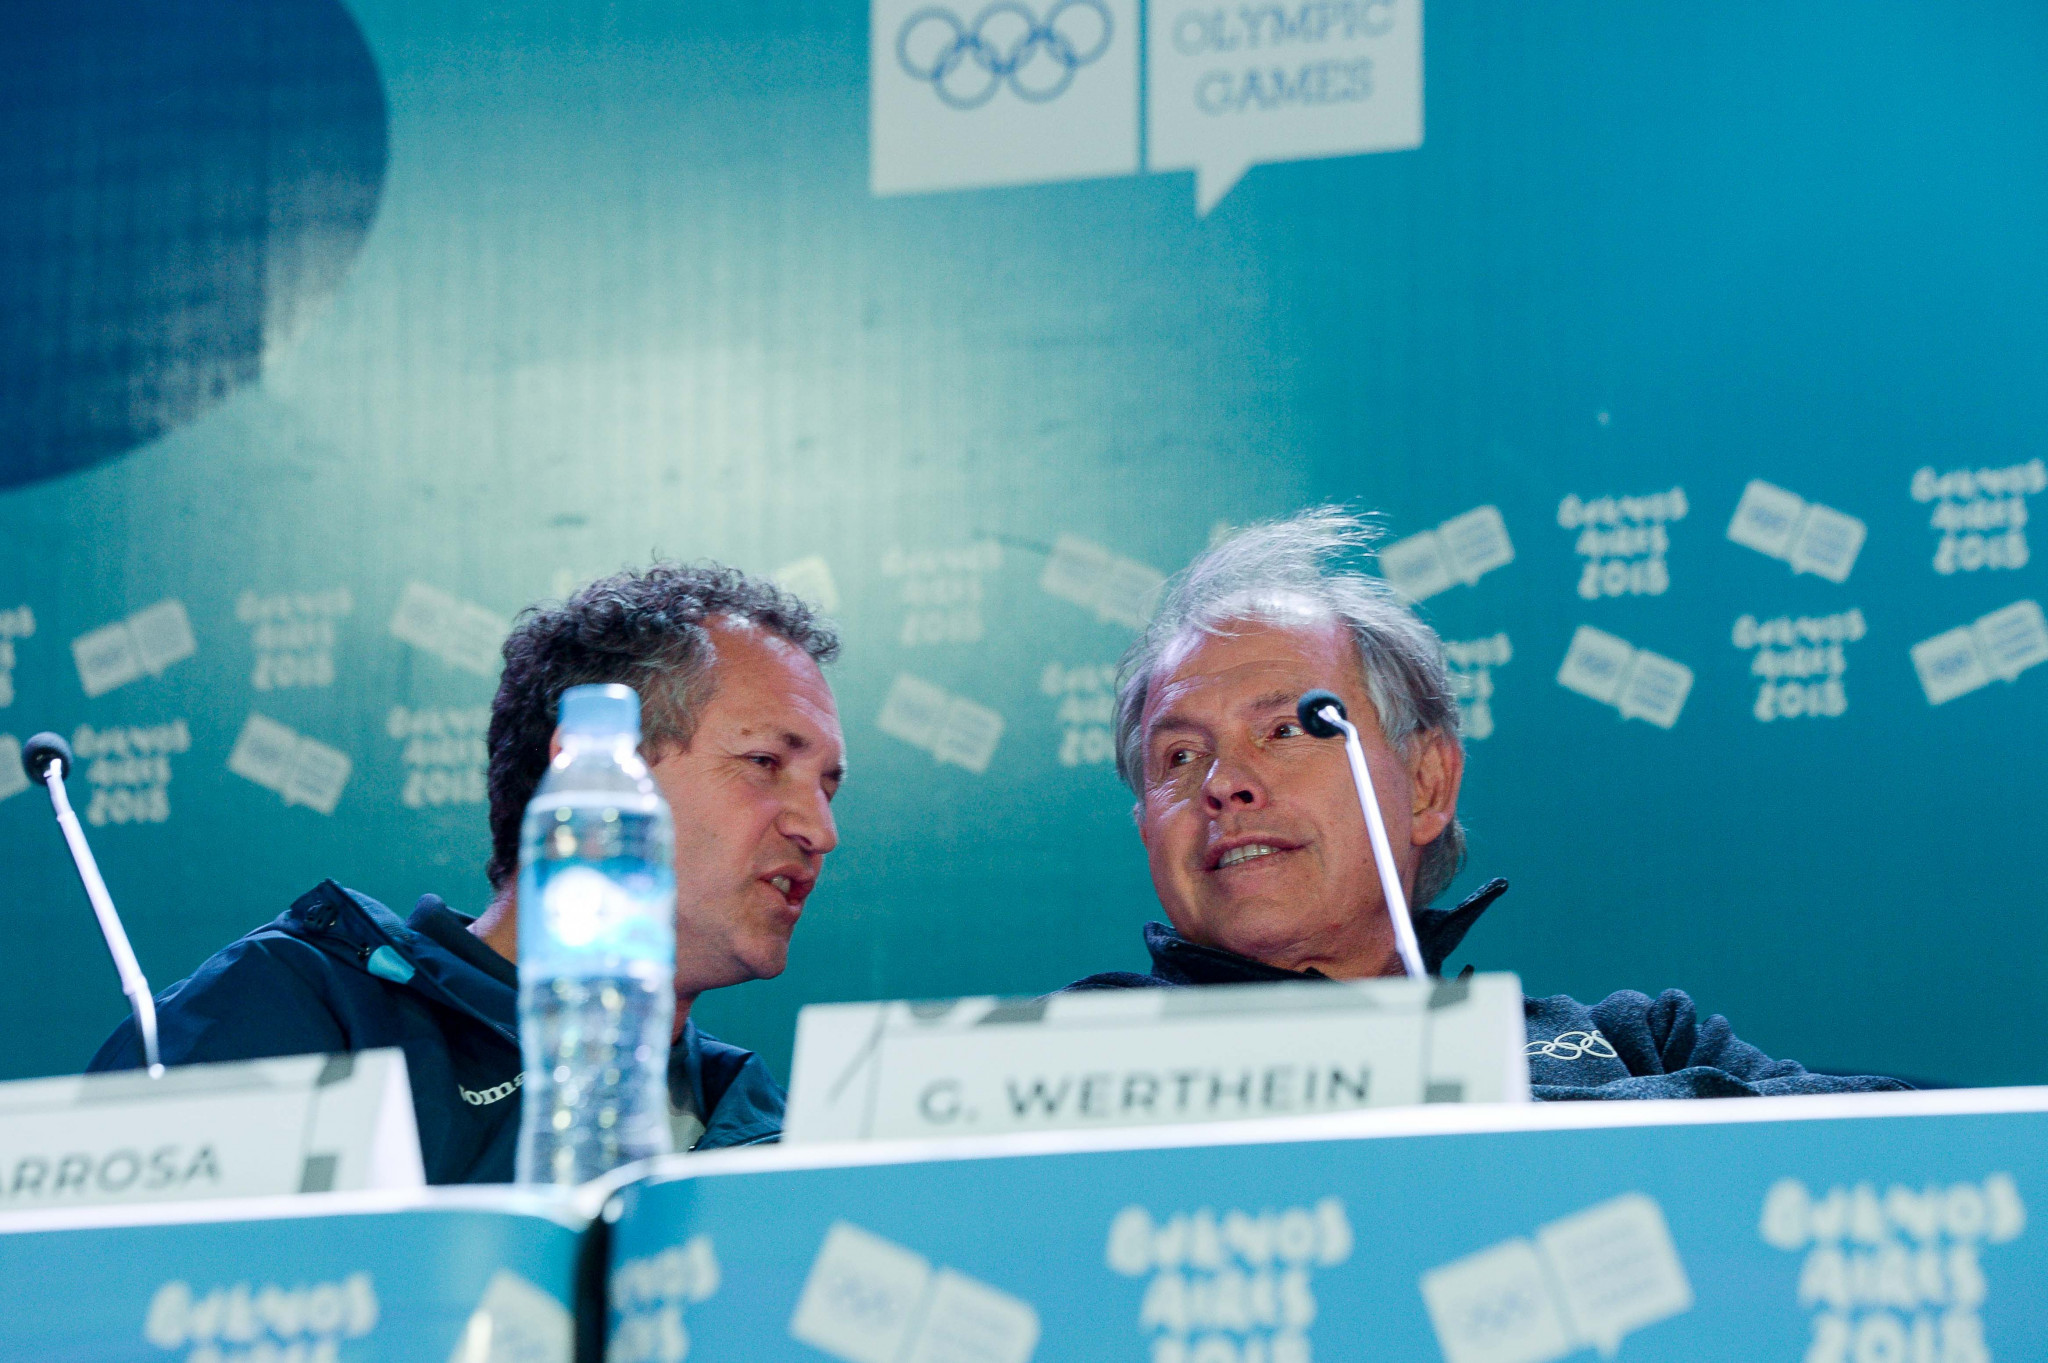 Buenos Aires 2018 President Gerardo Werthein claims athletes will be competing in Olympic-standard facilities ©Buenos Aires 2018